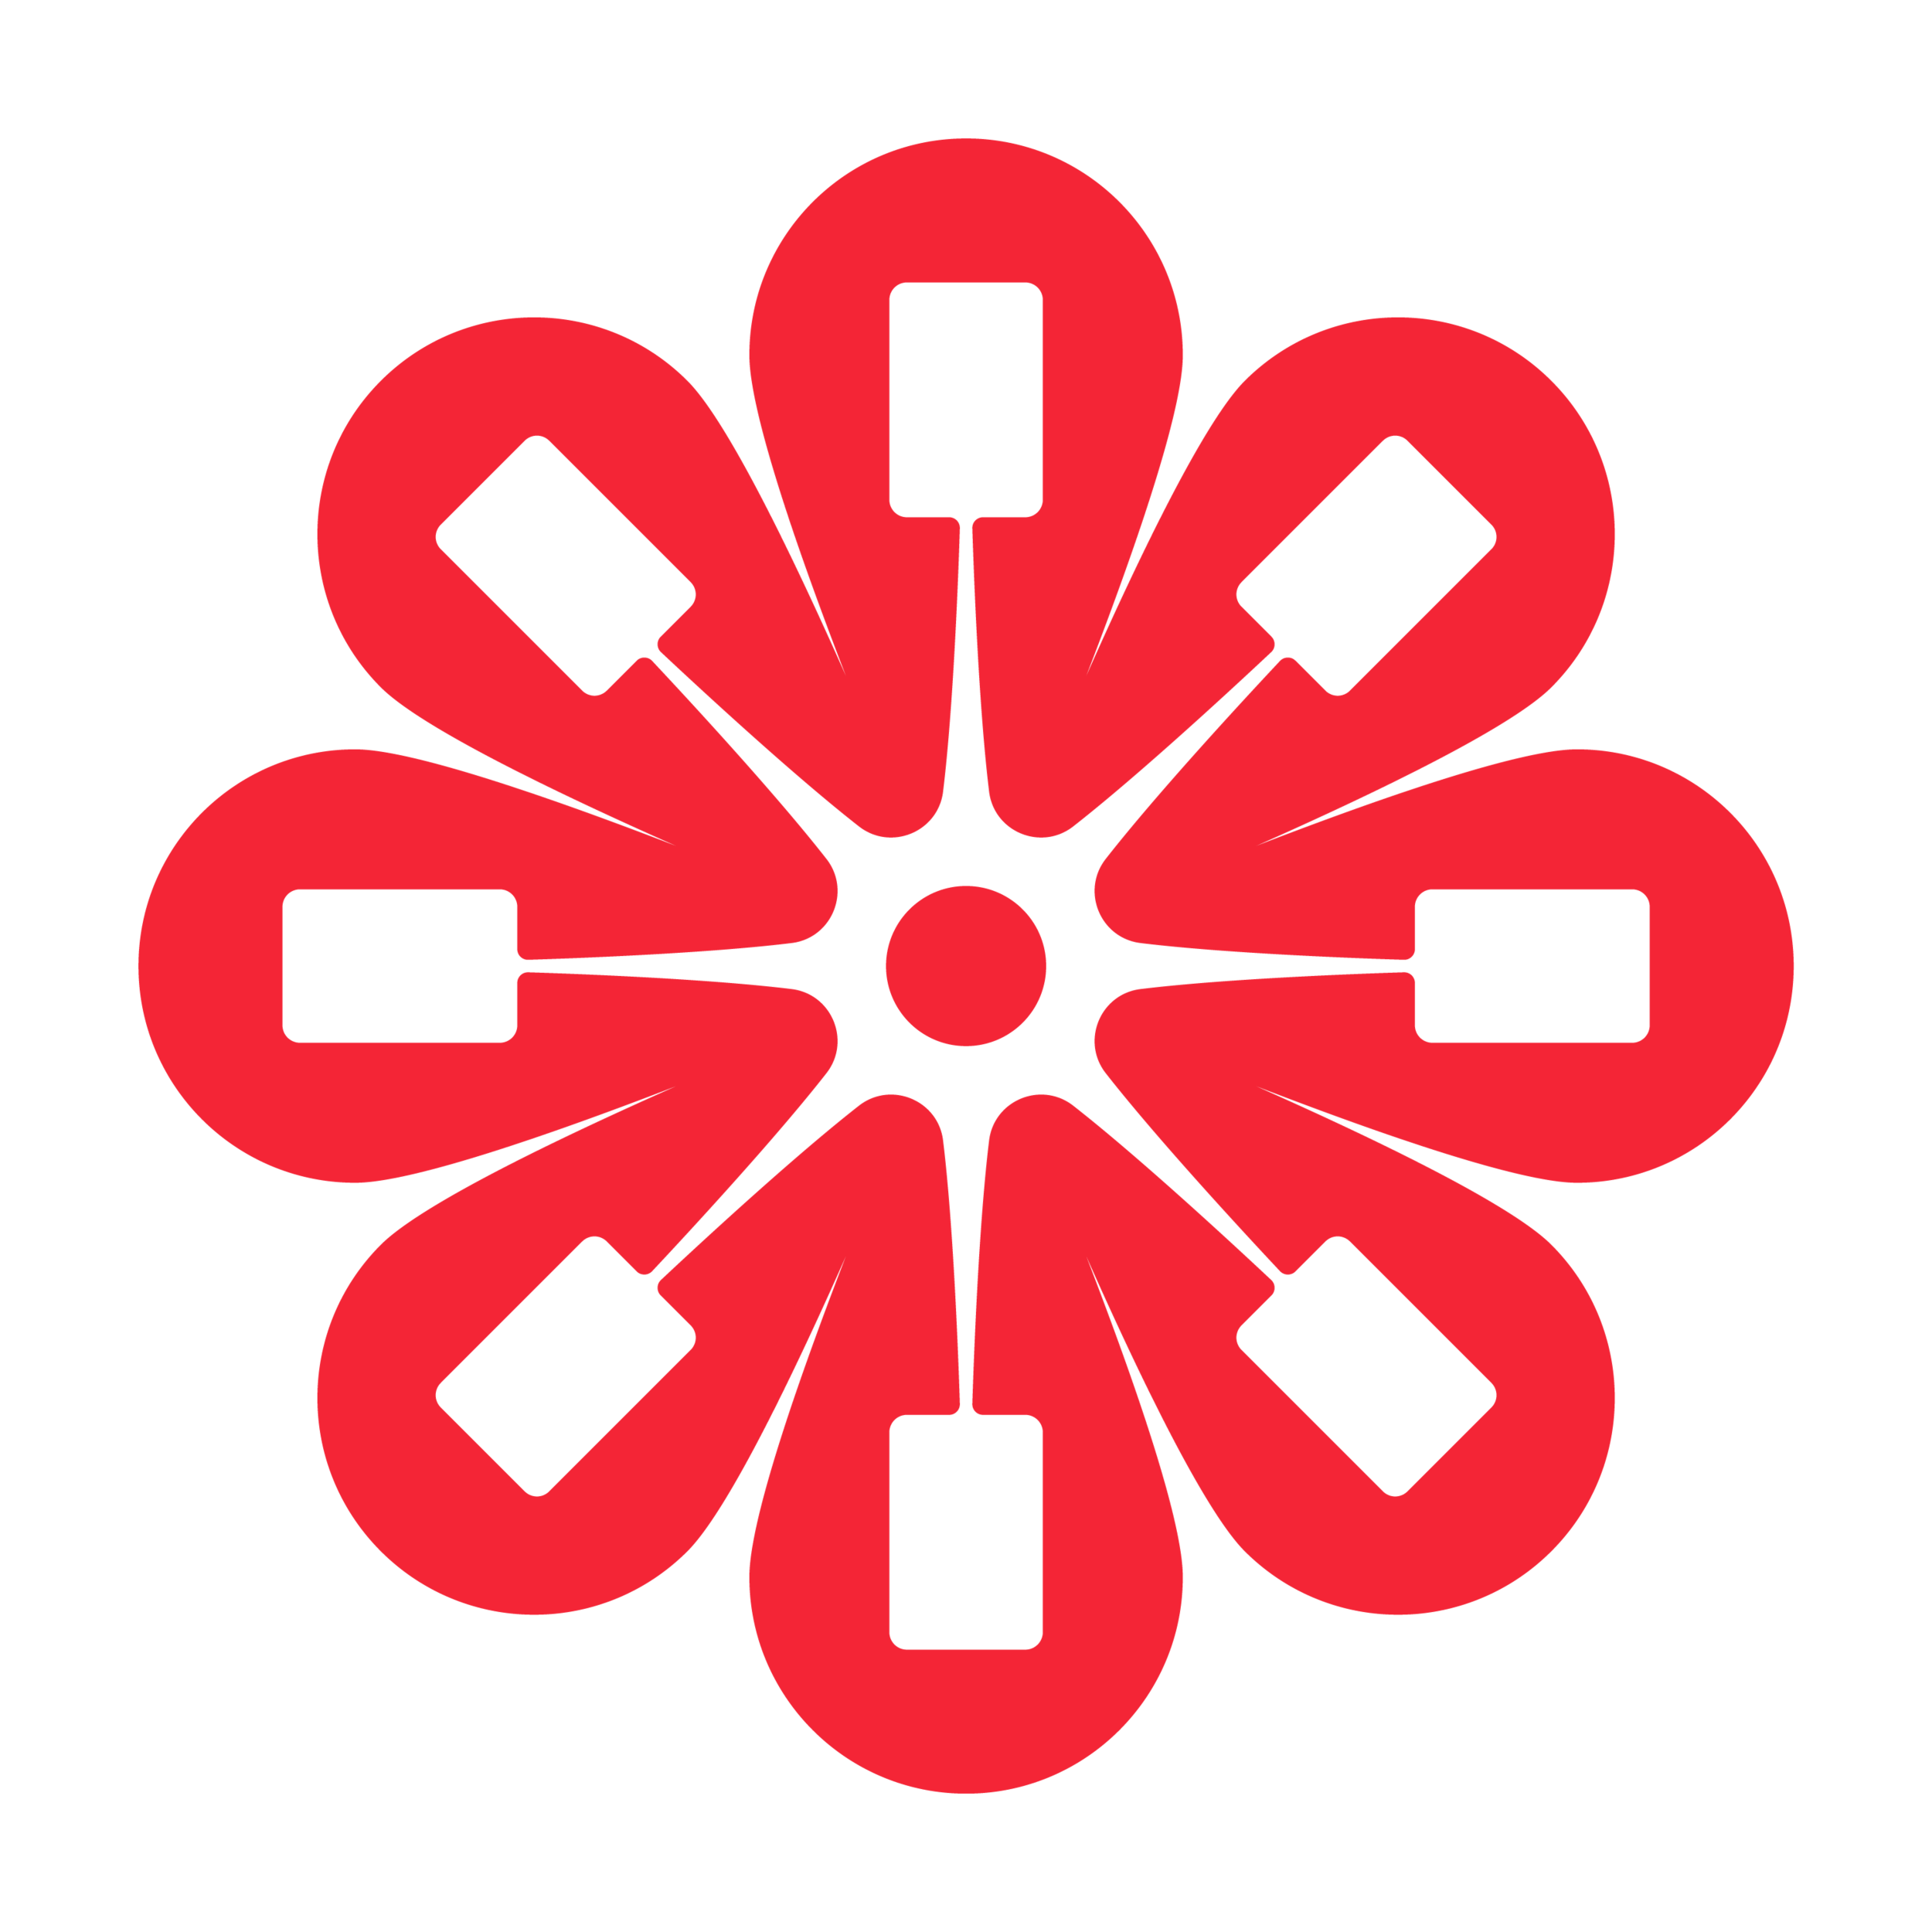 nr-logo-red-02.png